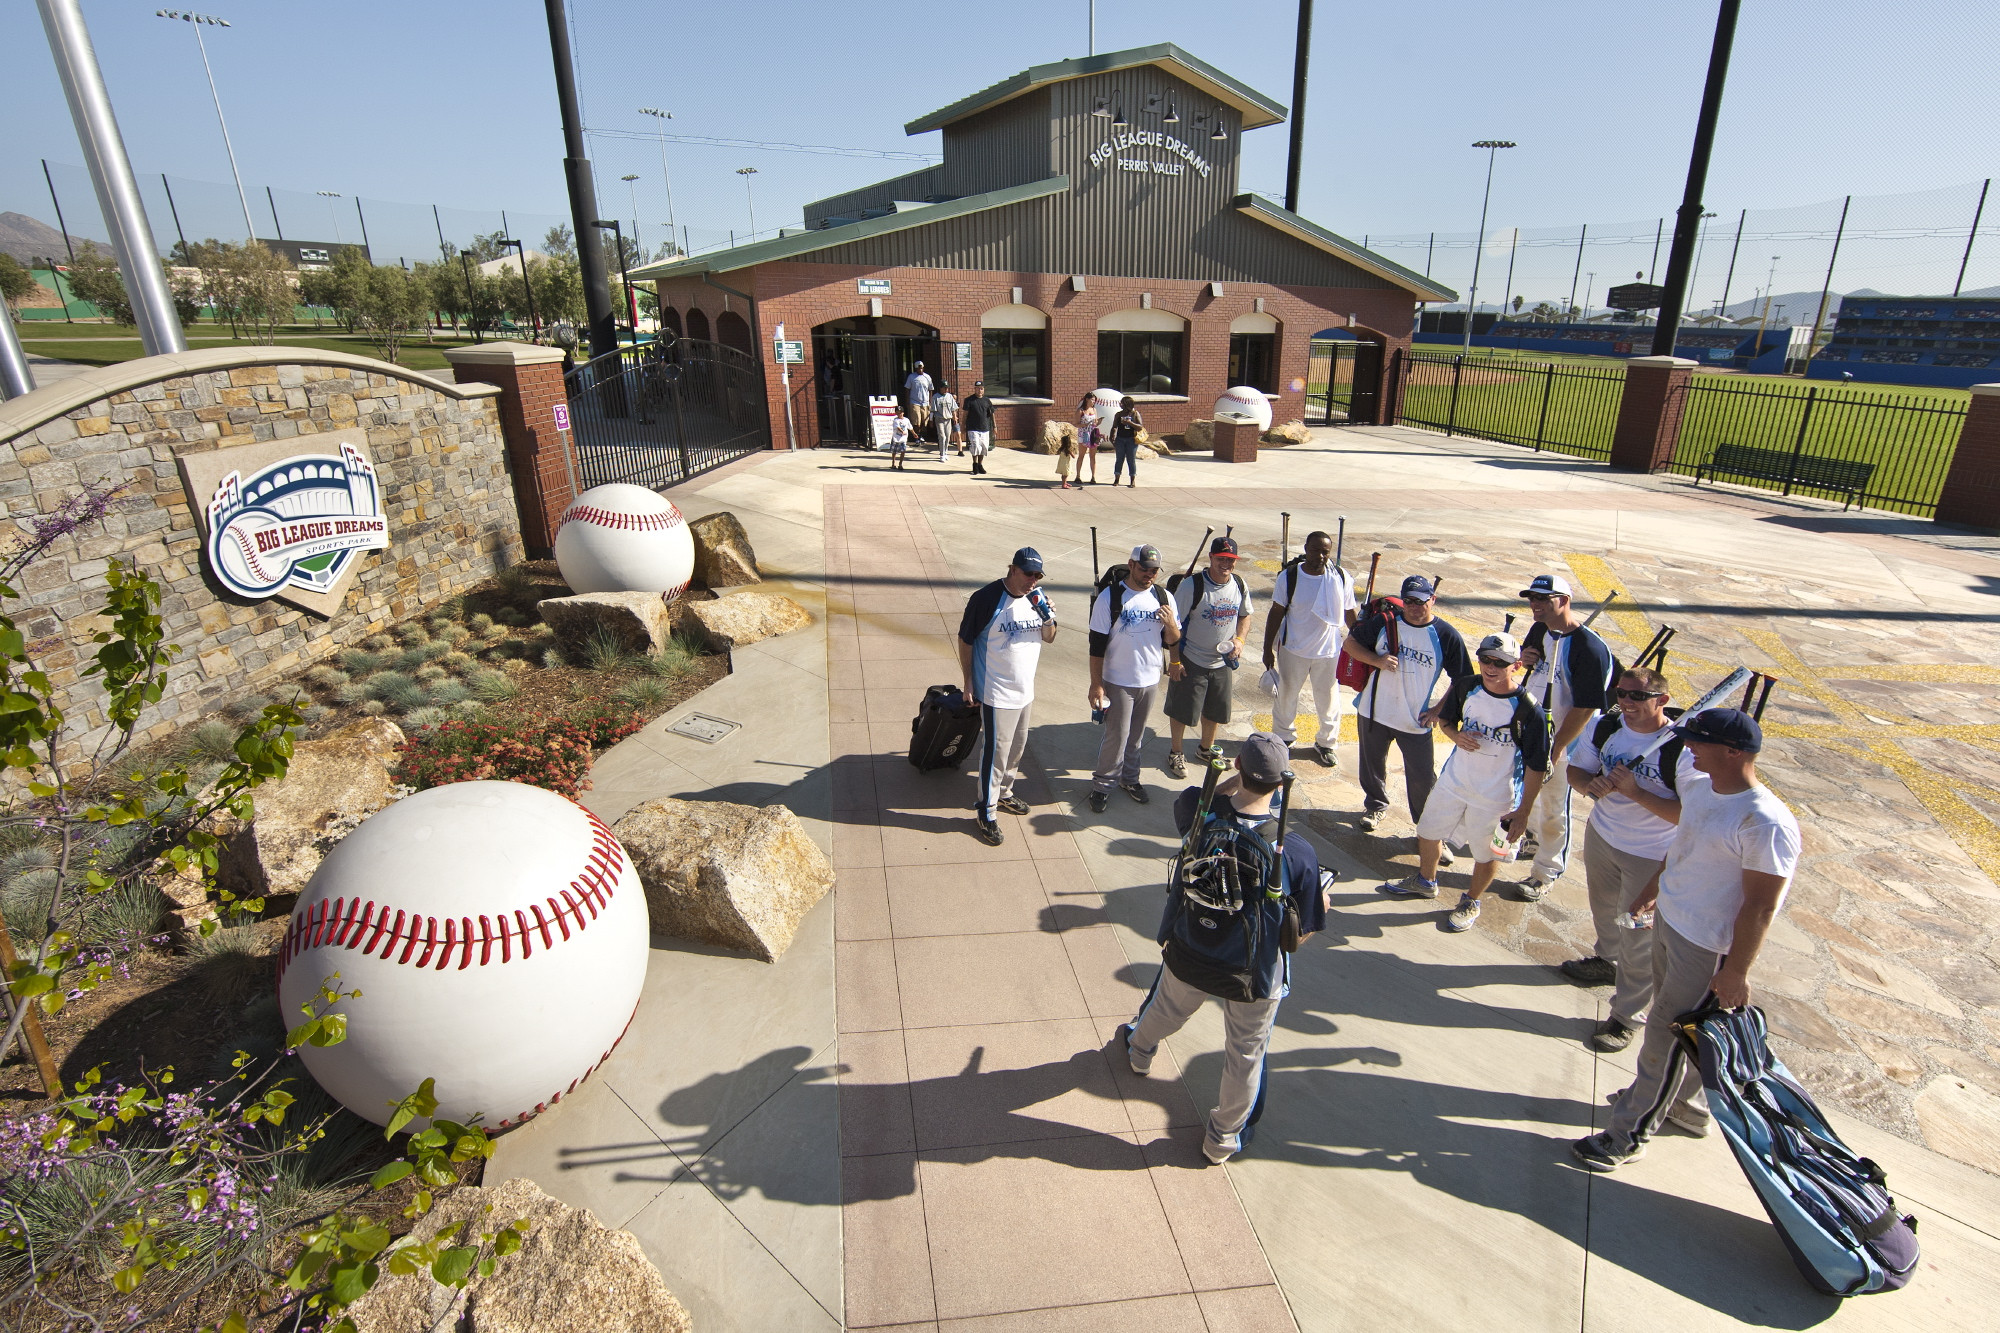 A team gathers outside a Big League Dreams facility near Perris, Calif. The California facility is similar to a $19 million facility planned for Clay County.